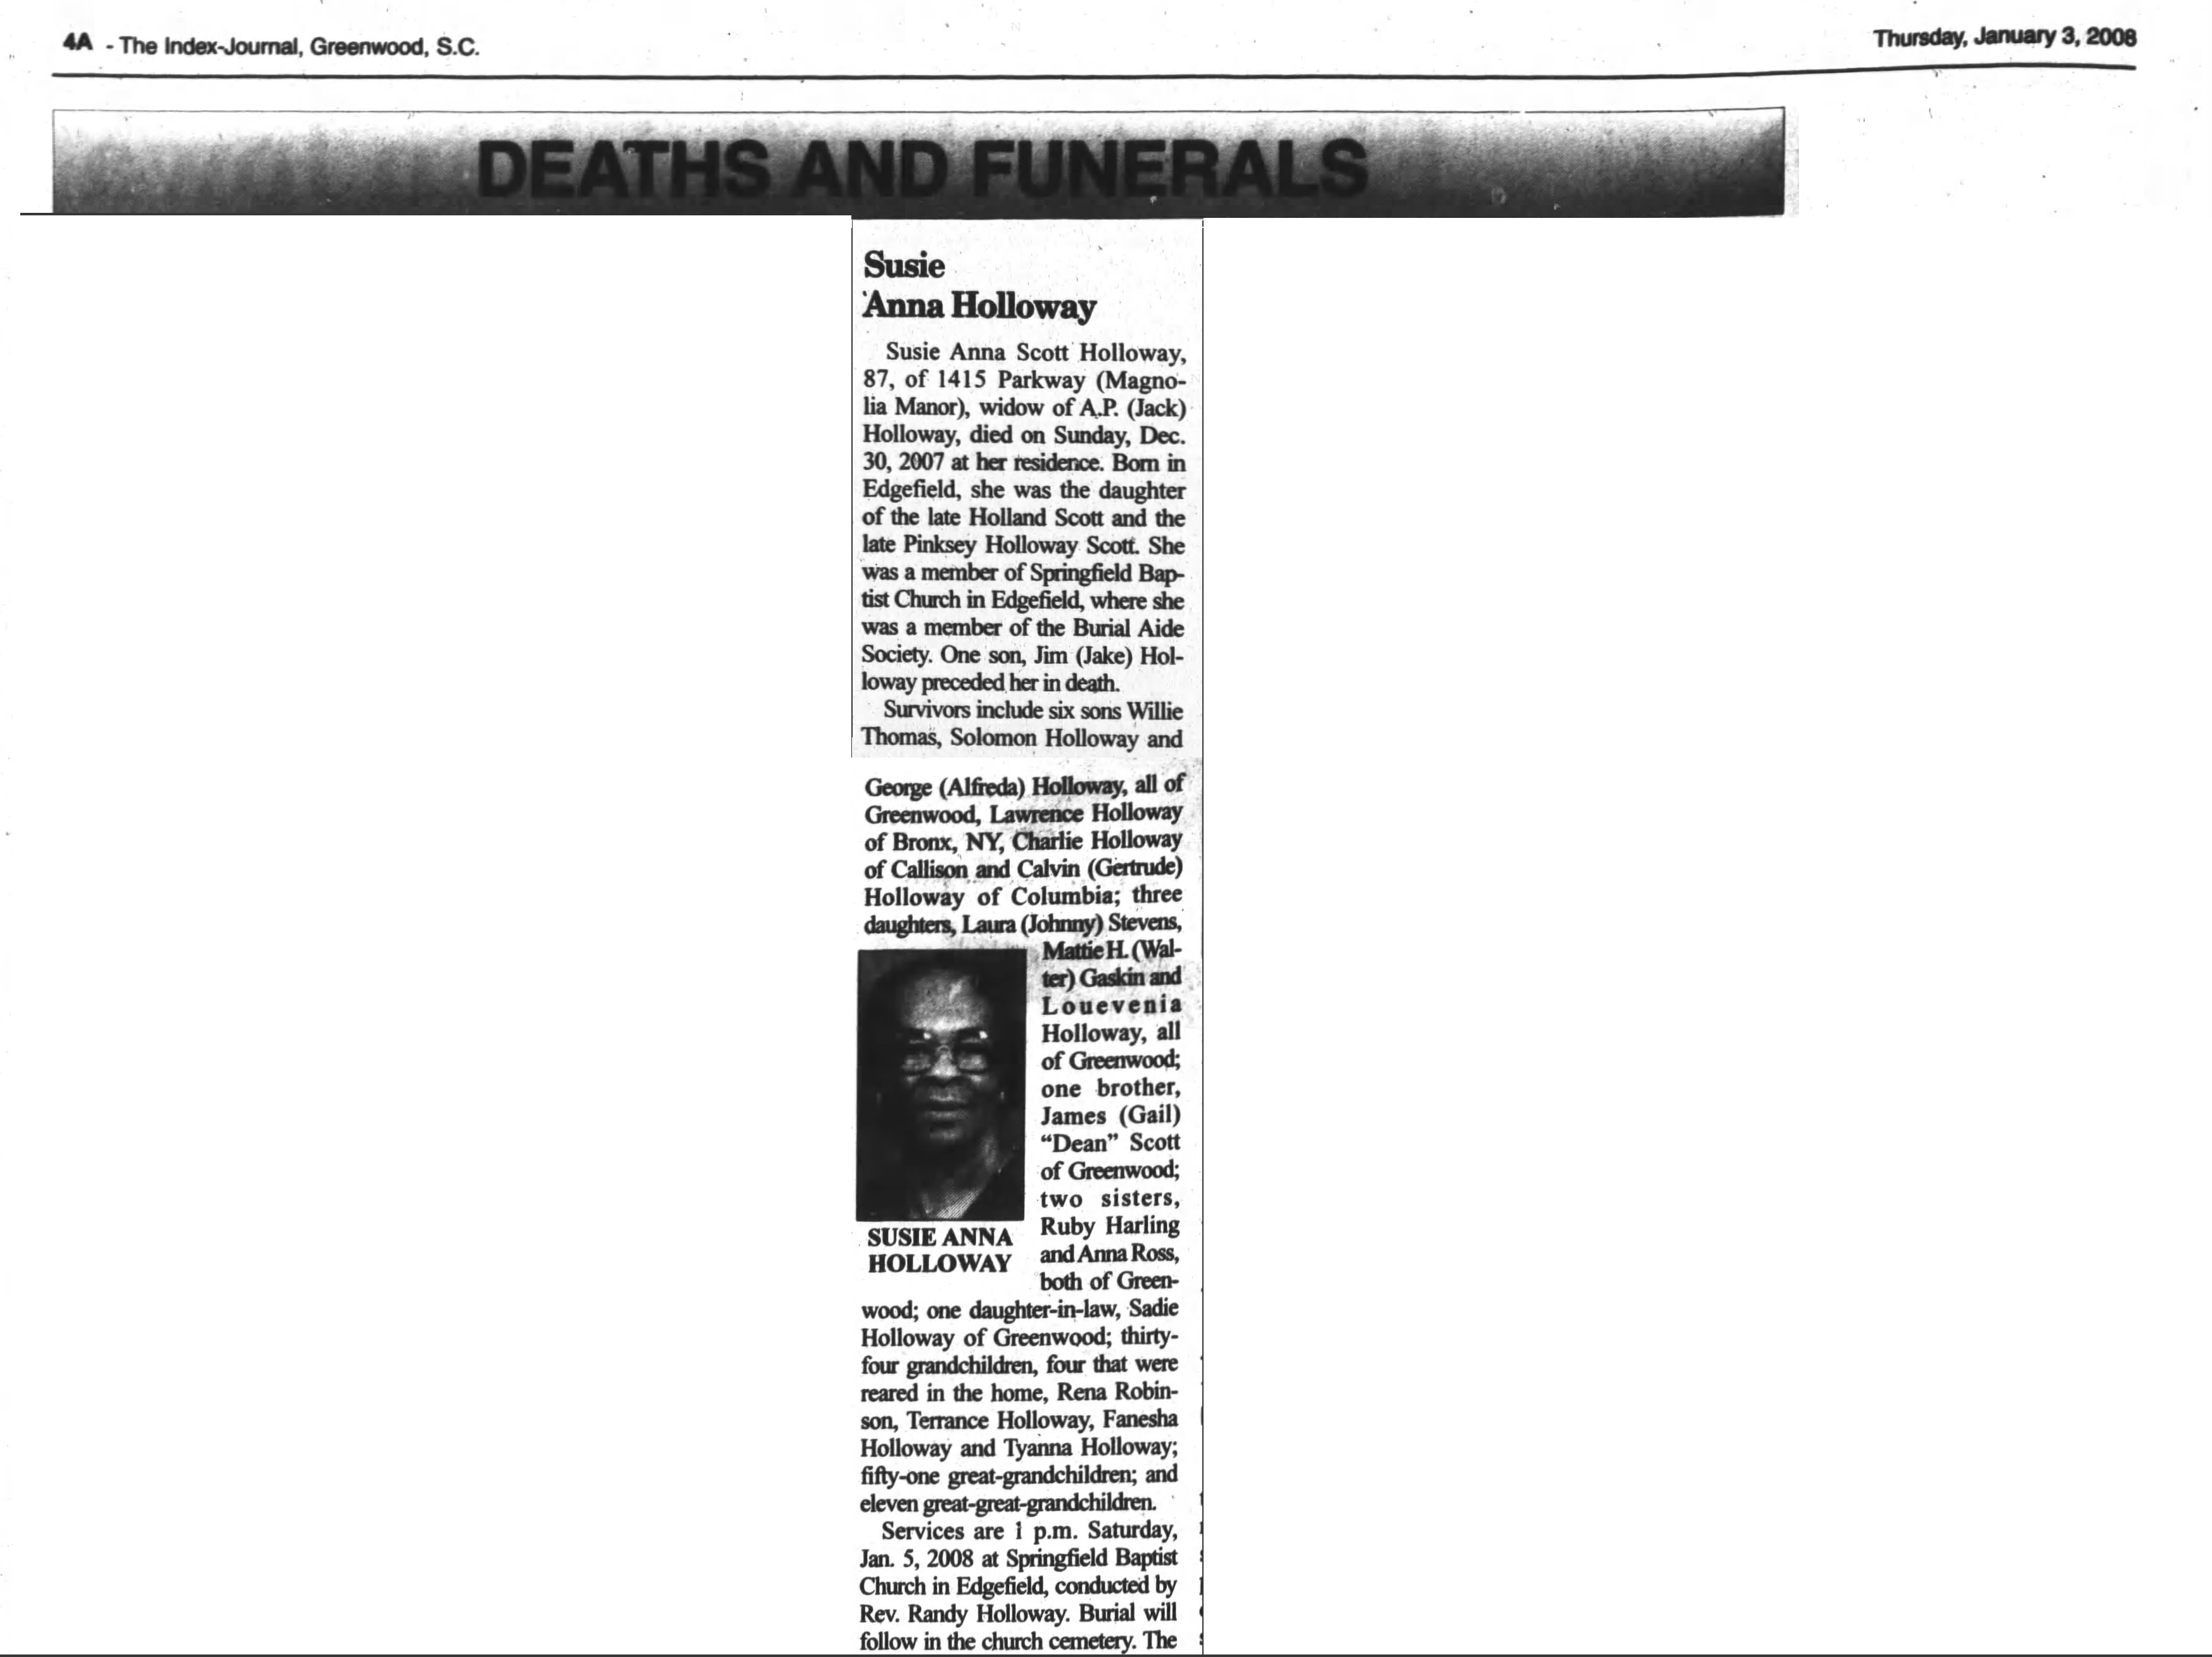 Baltimore county maryland genealogy learn familysearch org - Susie Anna Holloway Obit